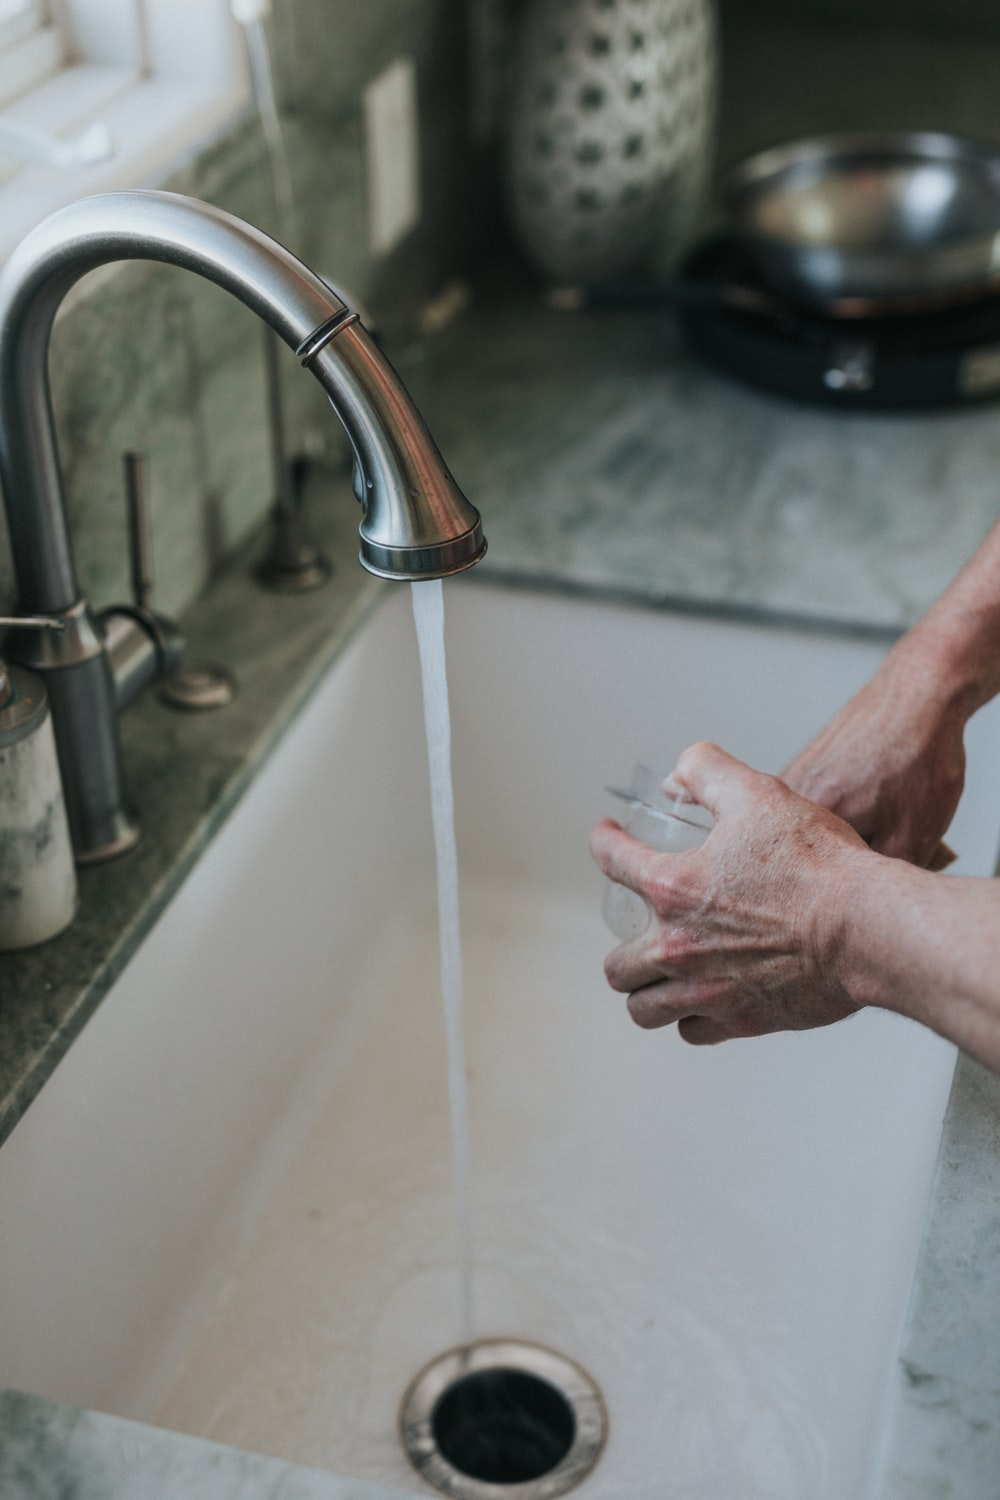 person washing hand on faucet